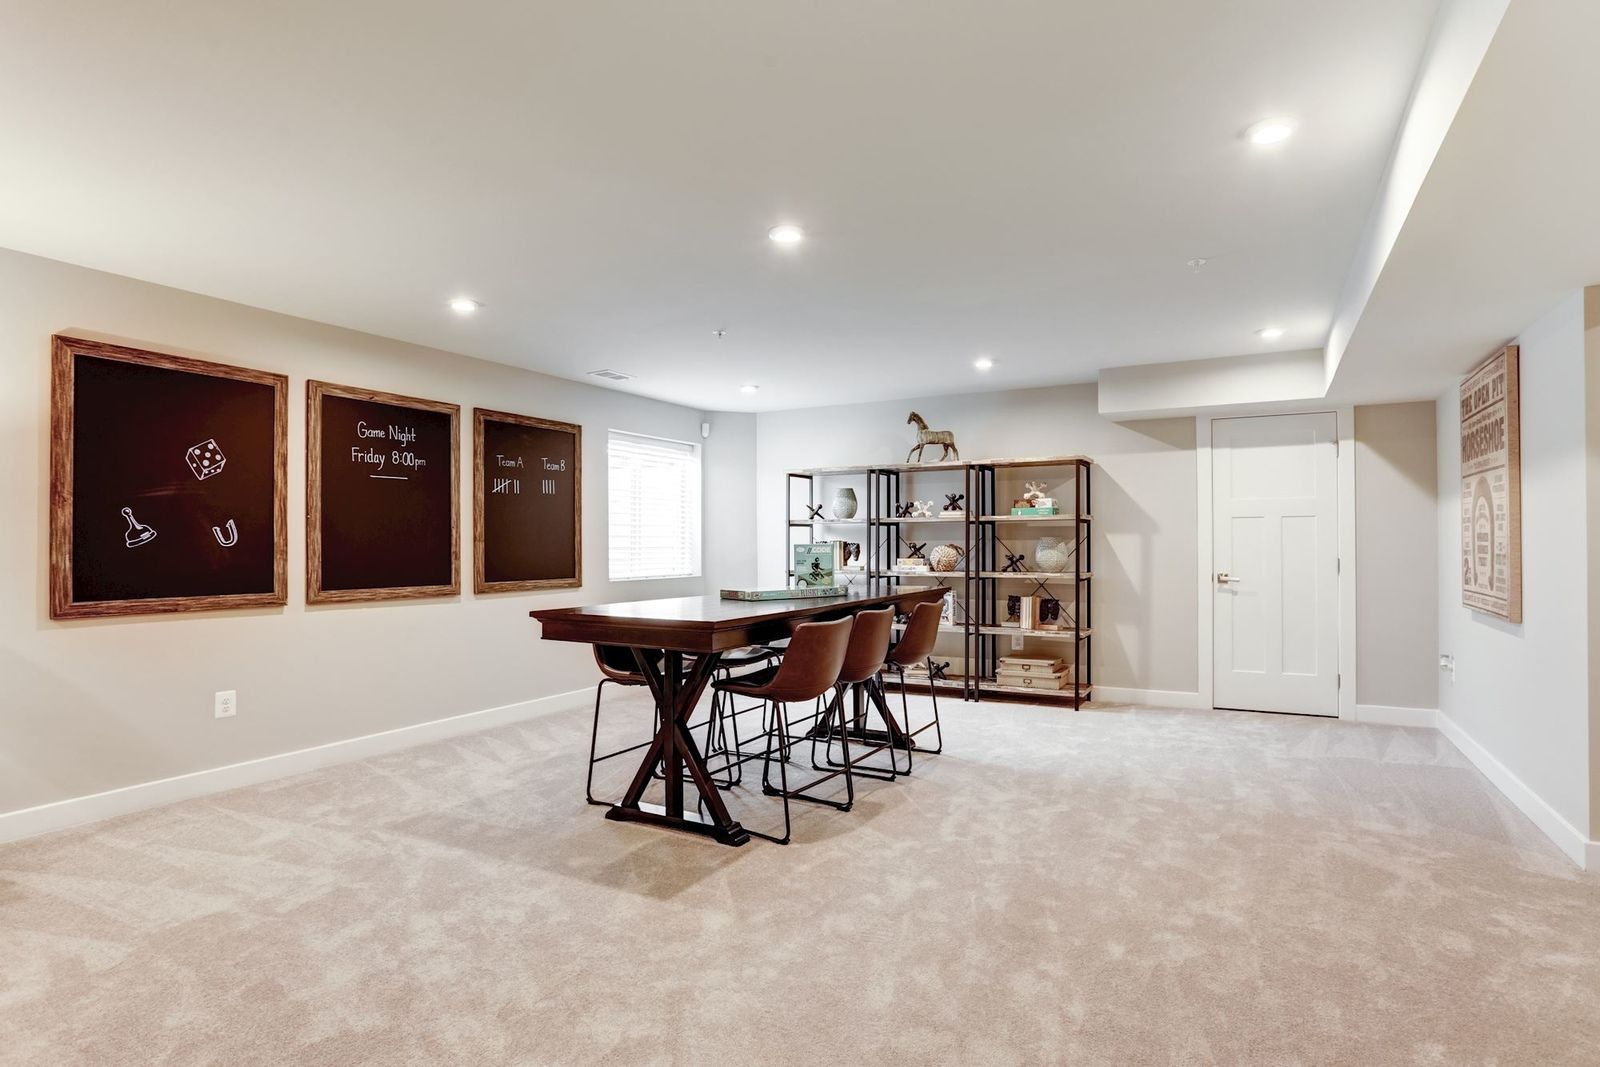 Recreation-Room-in-Salinger-at-Landsdale Single Family Homes-in-Monrovia